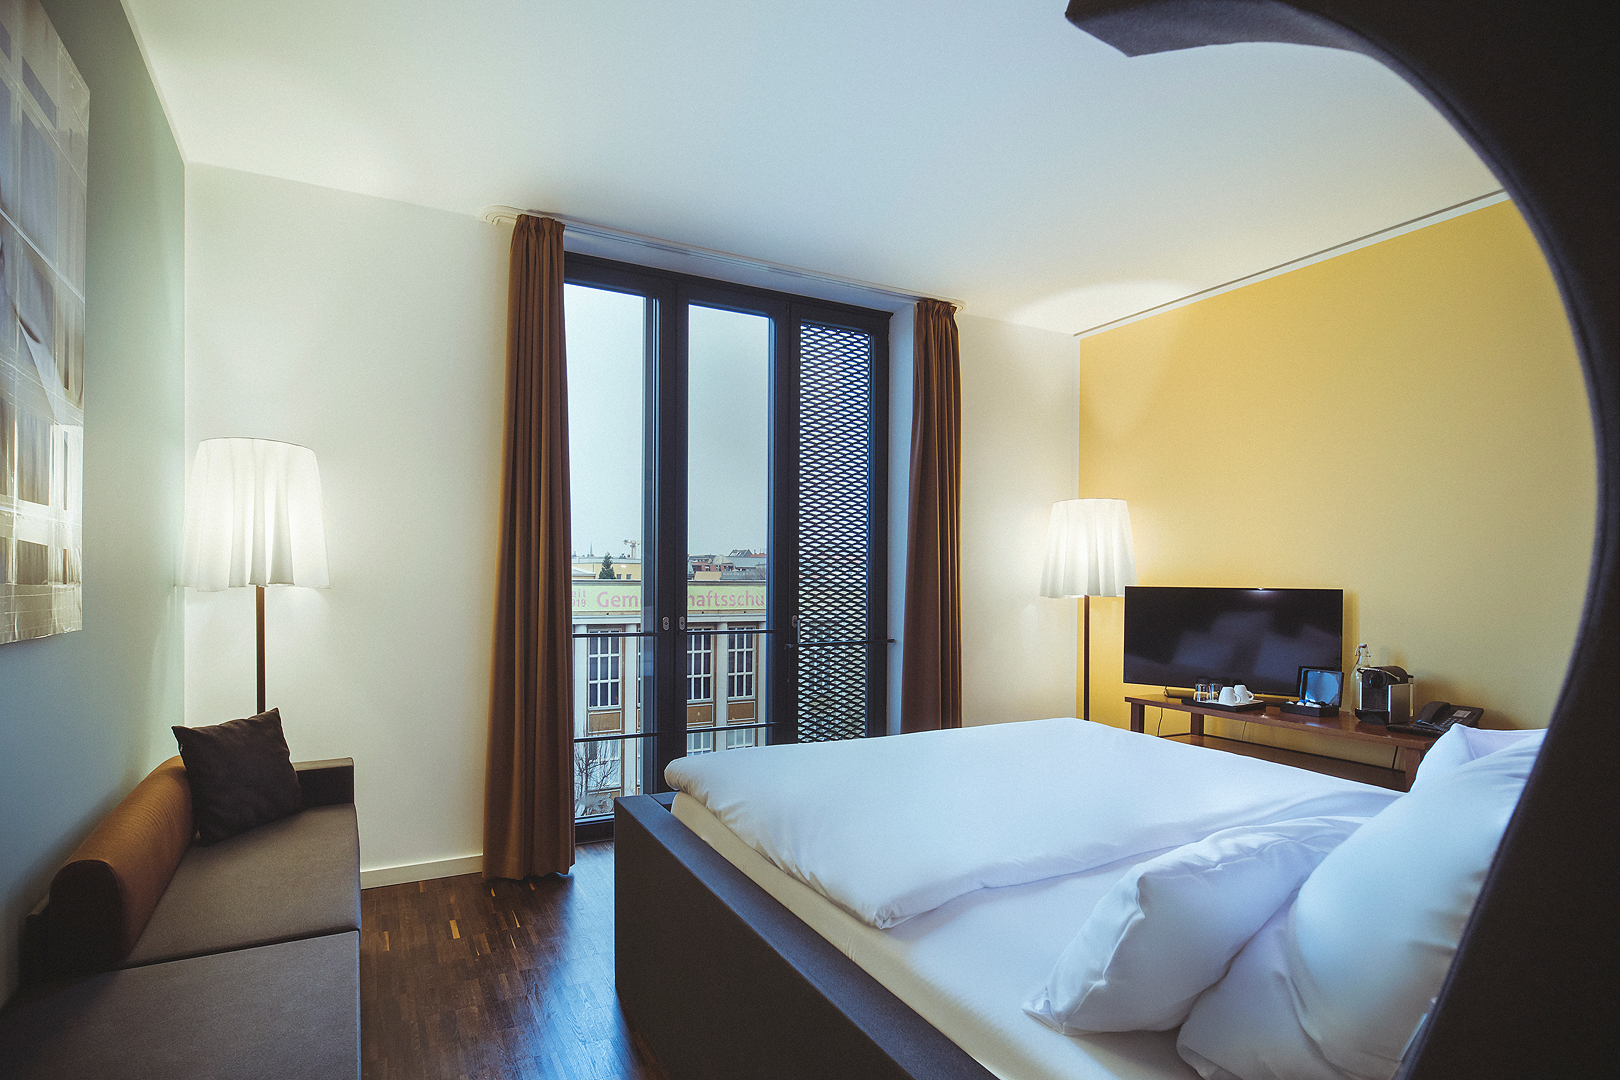 Large Room with the view to the window from bed